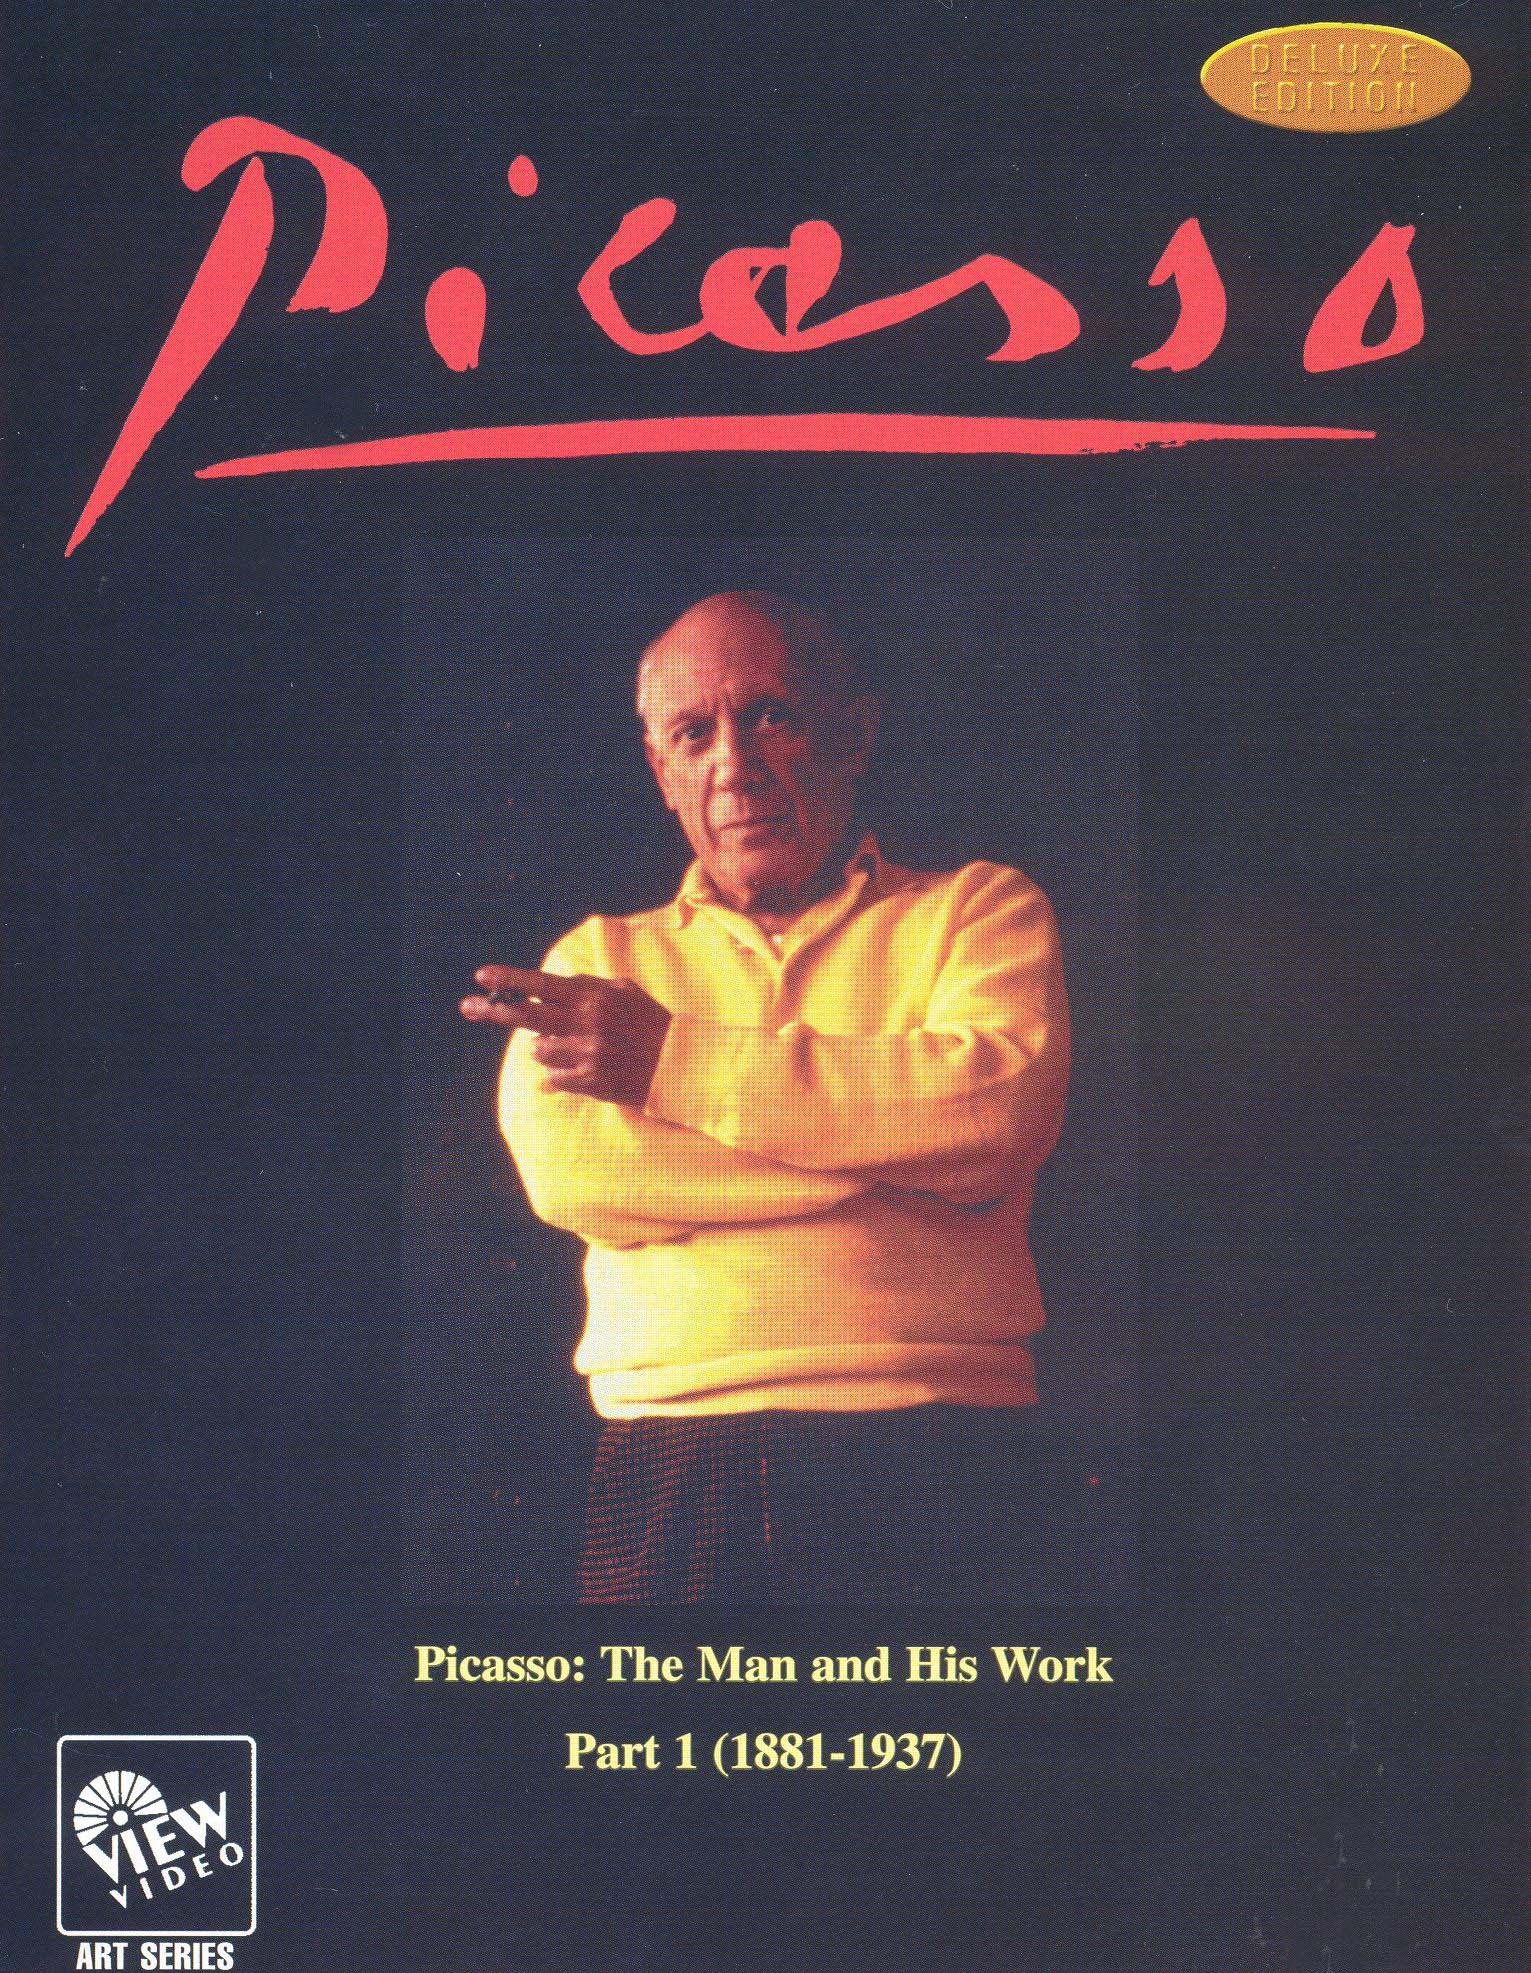 Picasso: The Man and His Work, Part 1 - 1881-1937